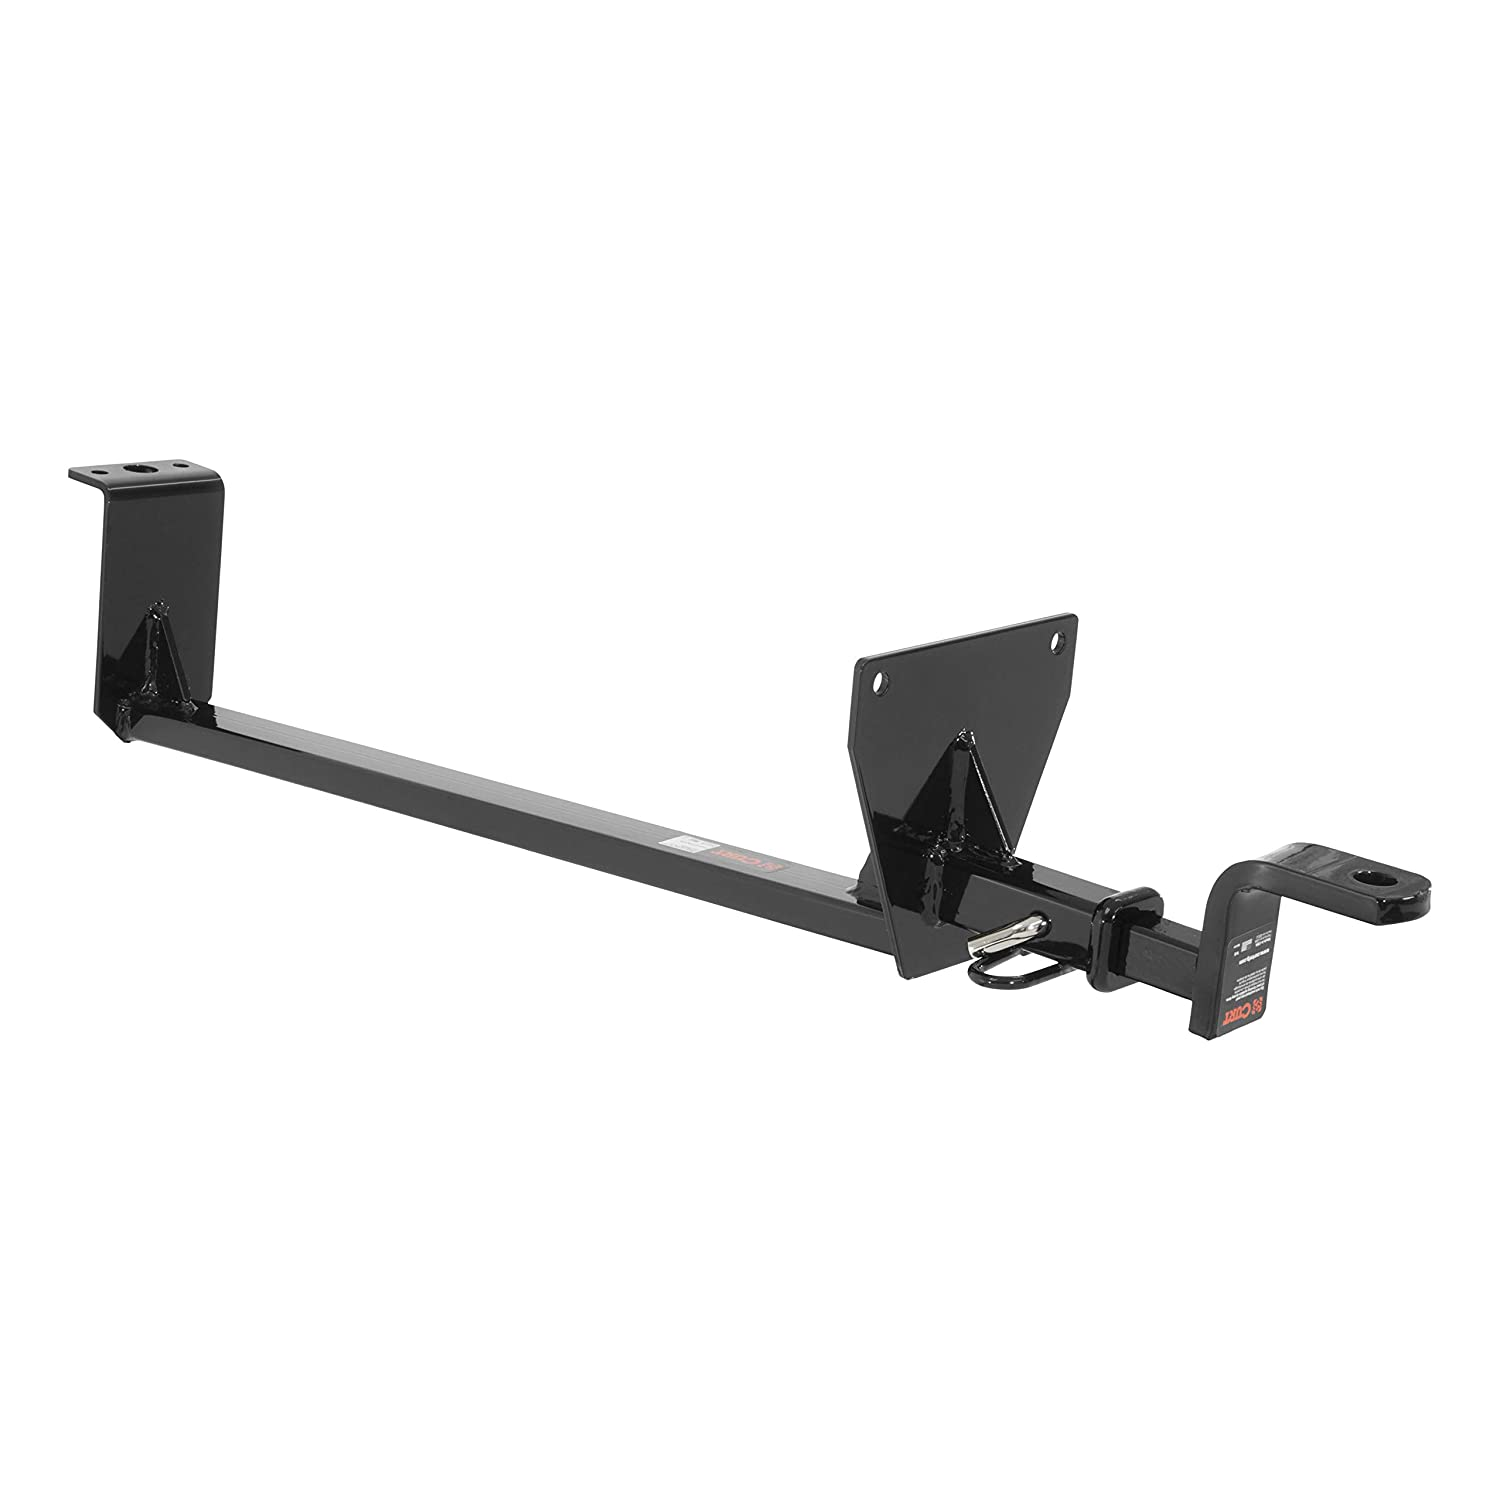 CURT 1-1//4 118243 Class 1 Trailer Hitch Ball Mount 1-1//4-Inch Receiver for Select Mercedes-Benz Vehicles